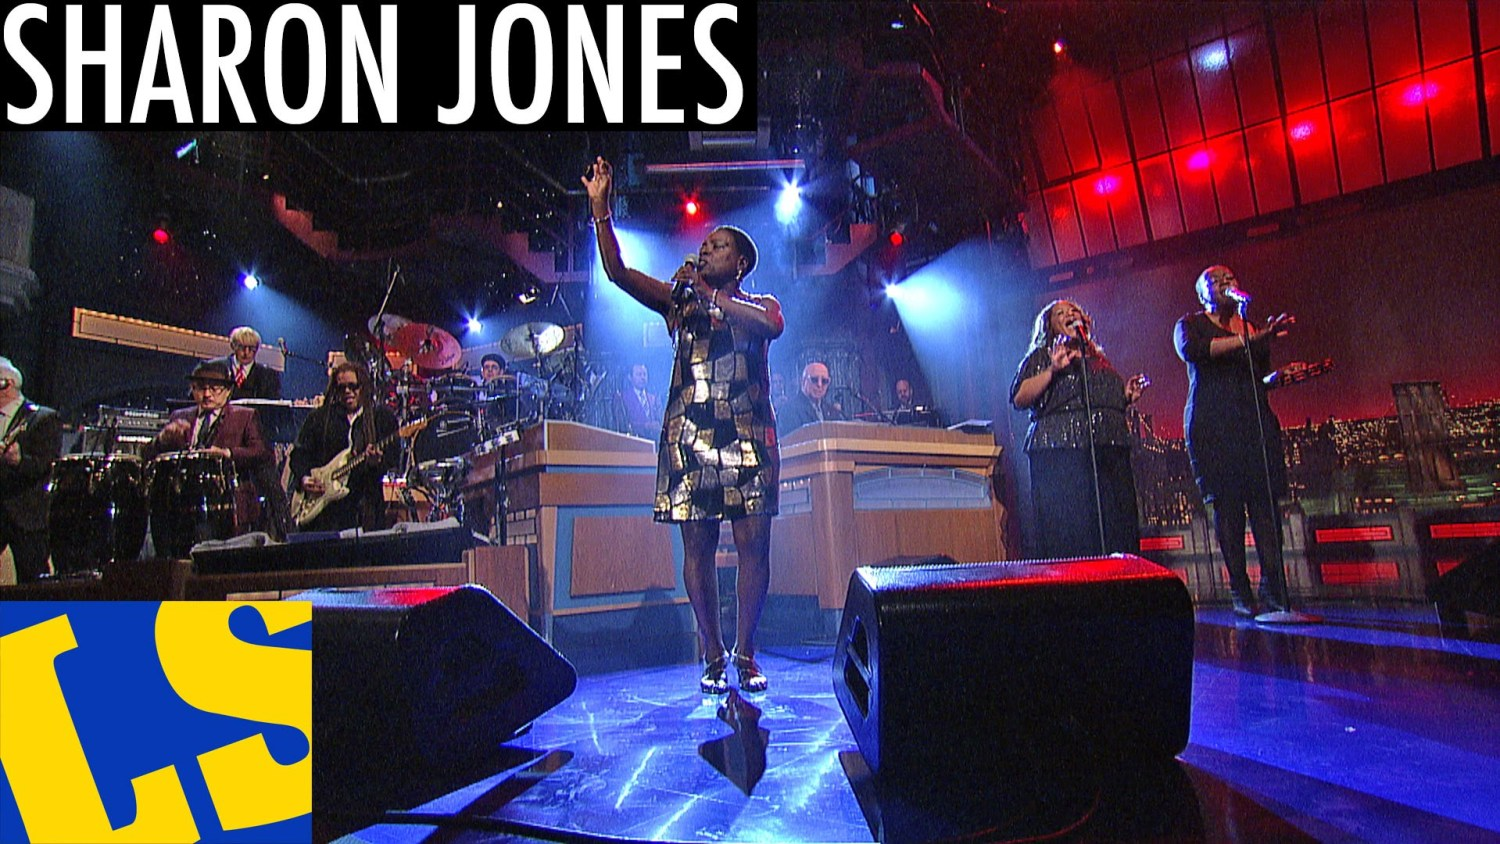 Sharon Jones Making Up and Breaking Up David Letterman